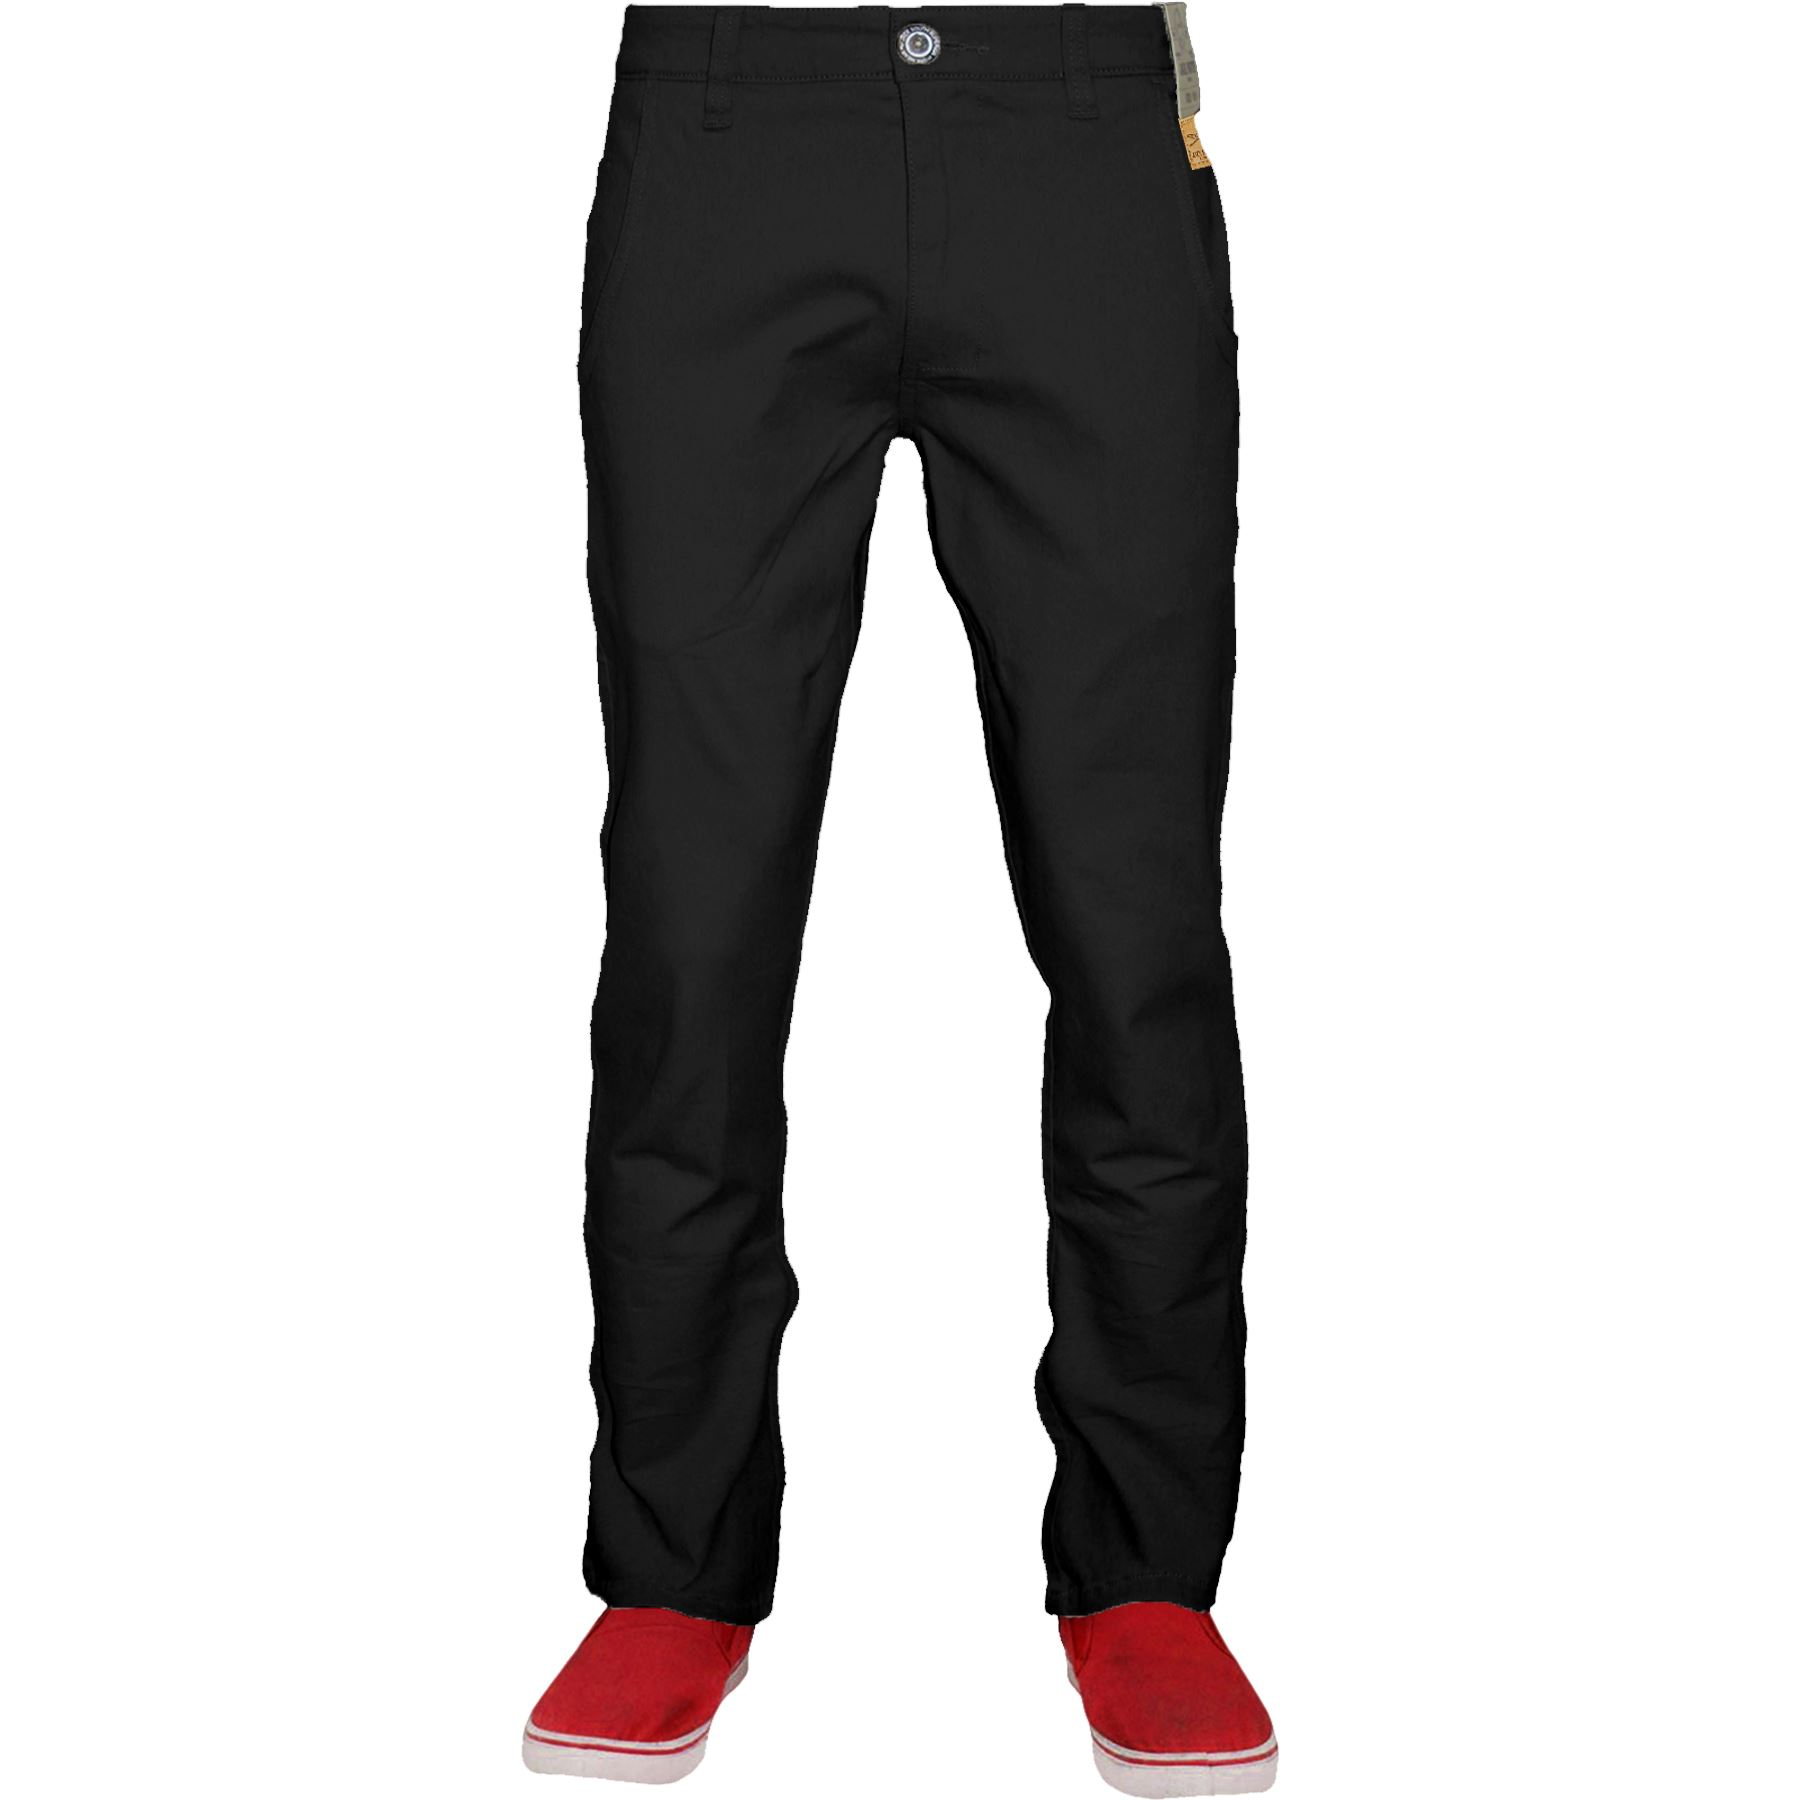 Mens-Chino-Classic-Regular-Fit-Trouser-Casual-Stretch-Spandex-Pants-Size-32-40 thumbnail 2